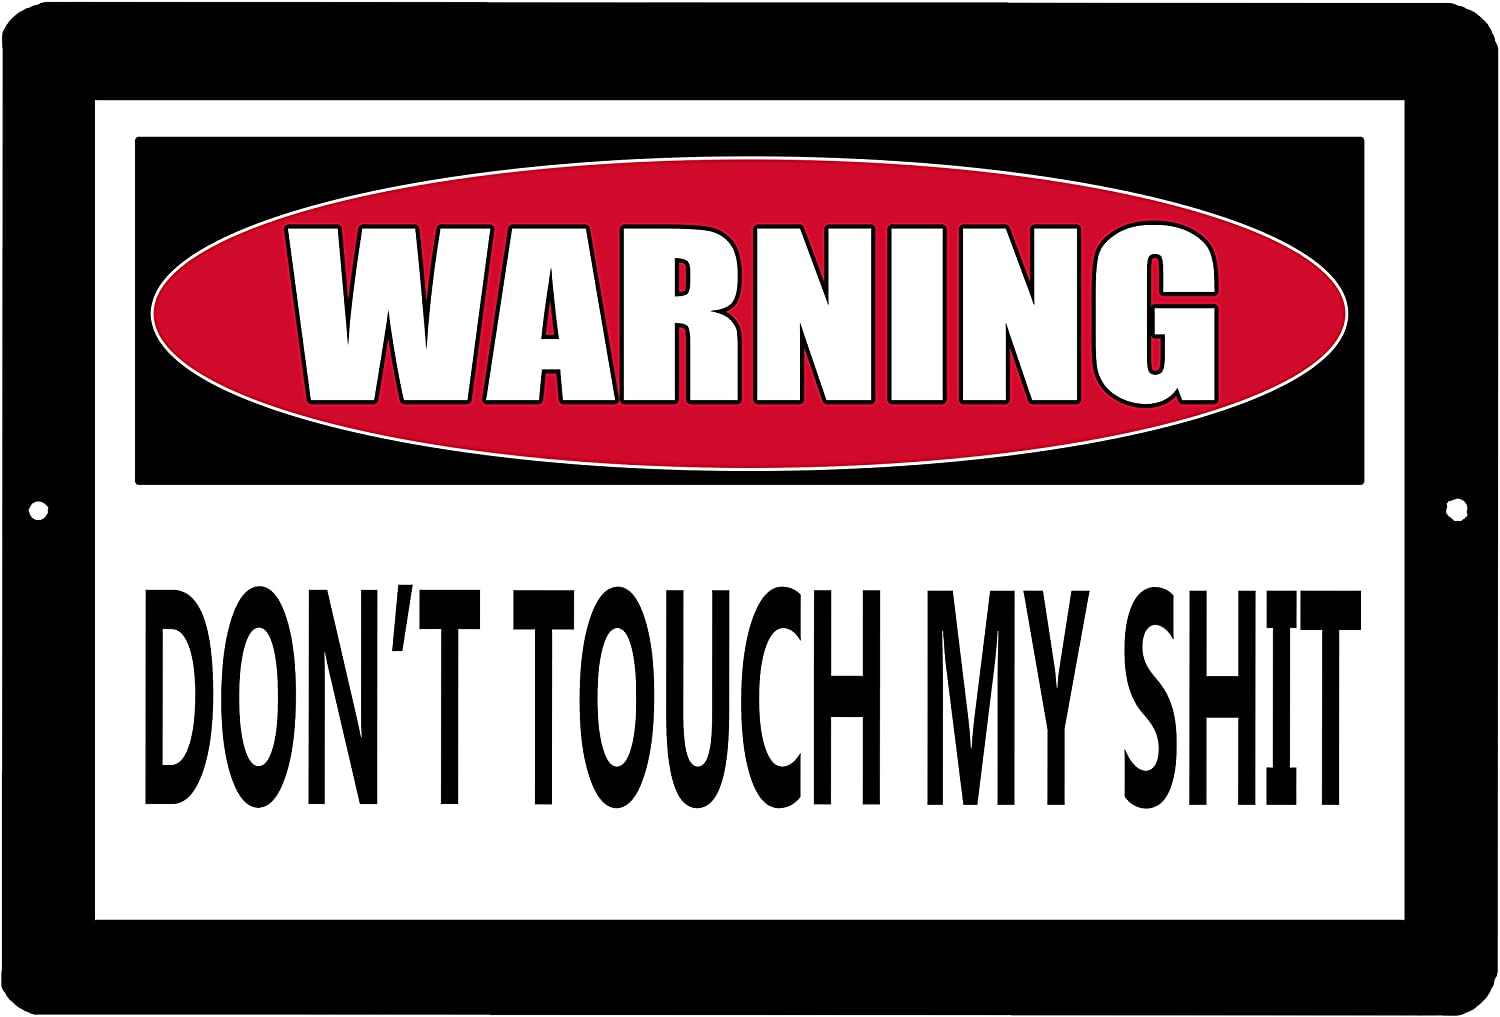 Rogue River Tactical Funny Metal Warning Tin Sign Wall Decor Man Cave Bar Don't Touch My